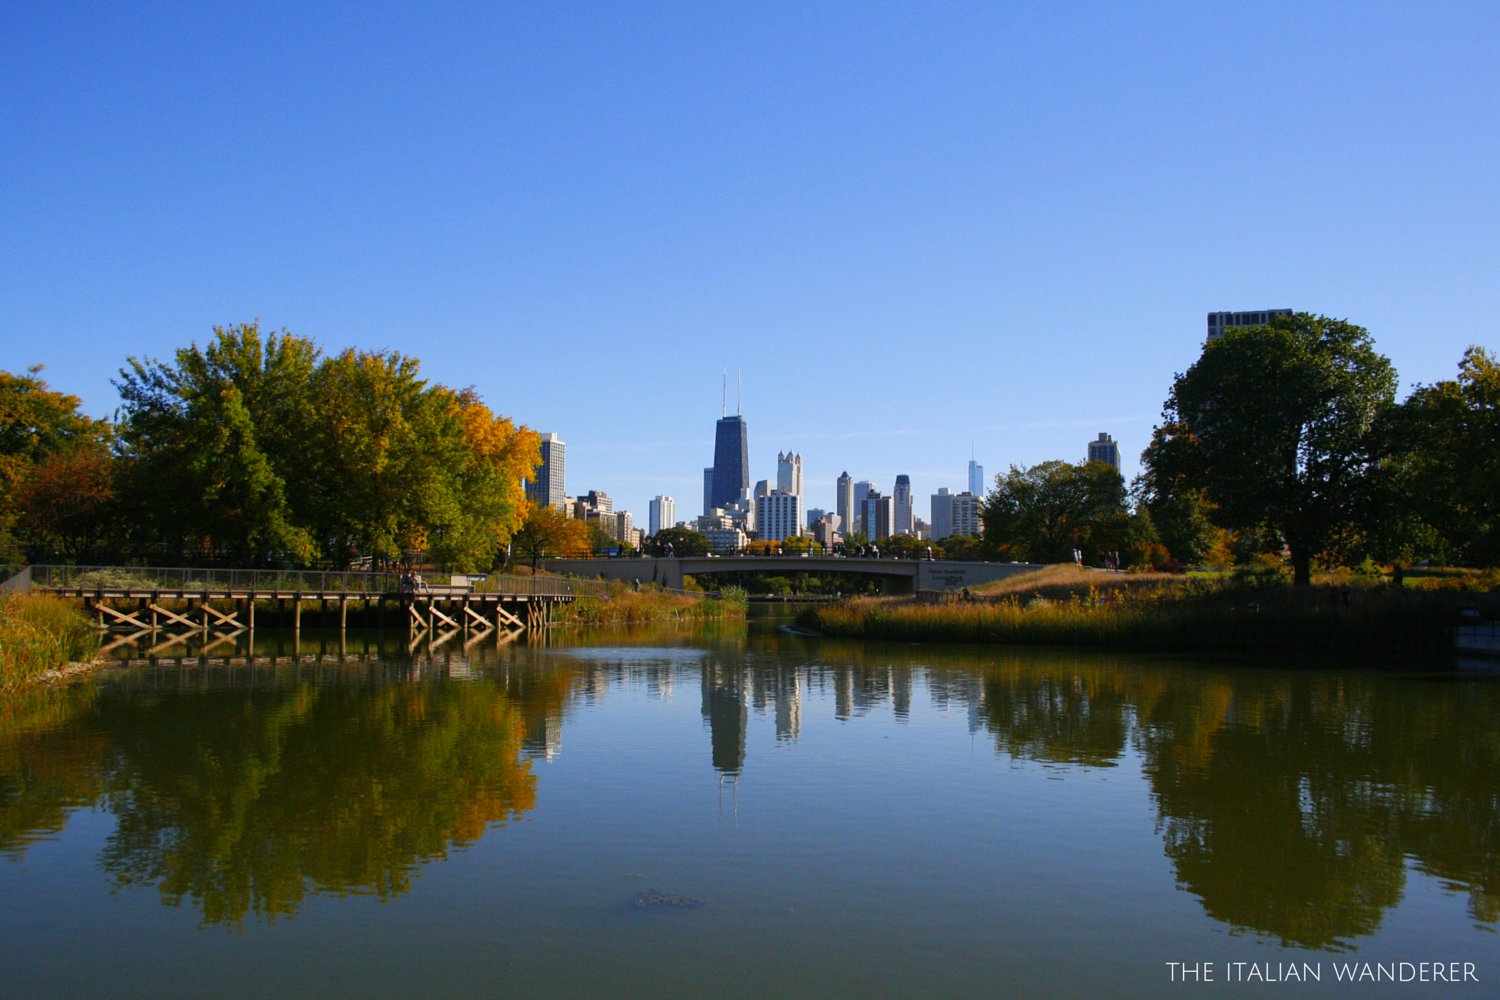 The view of Chicago from the Zoo Park